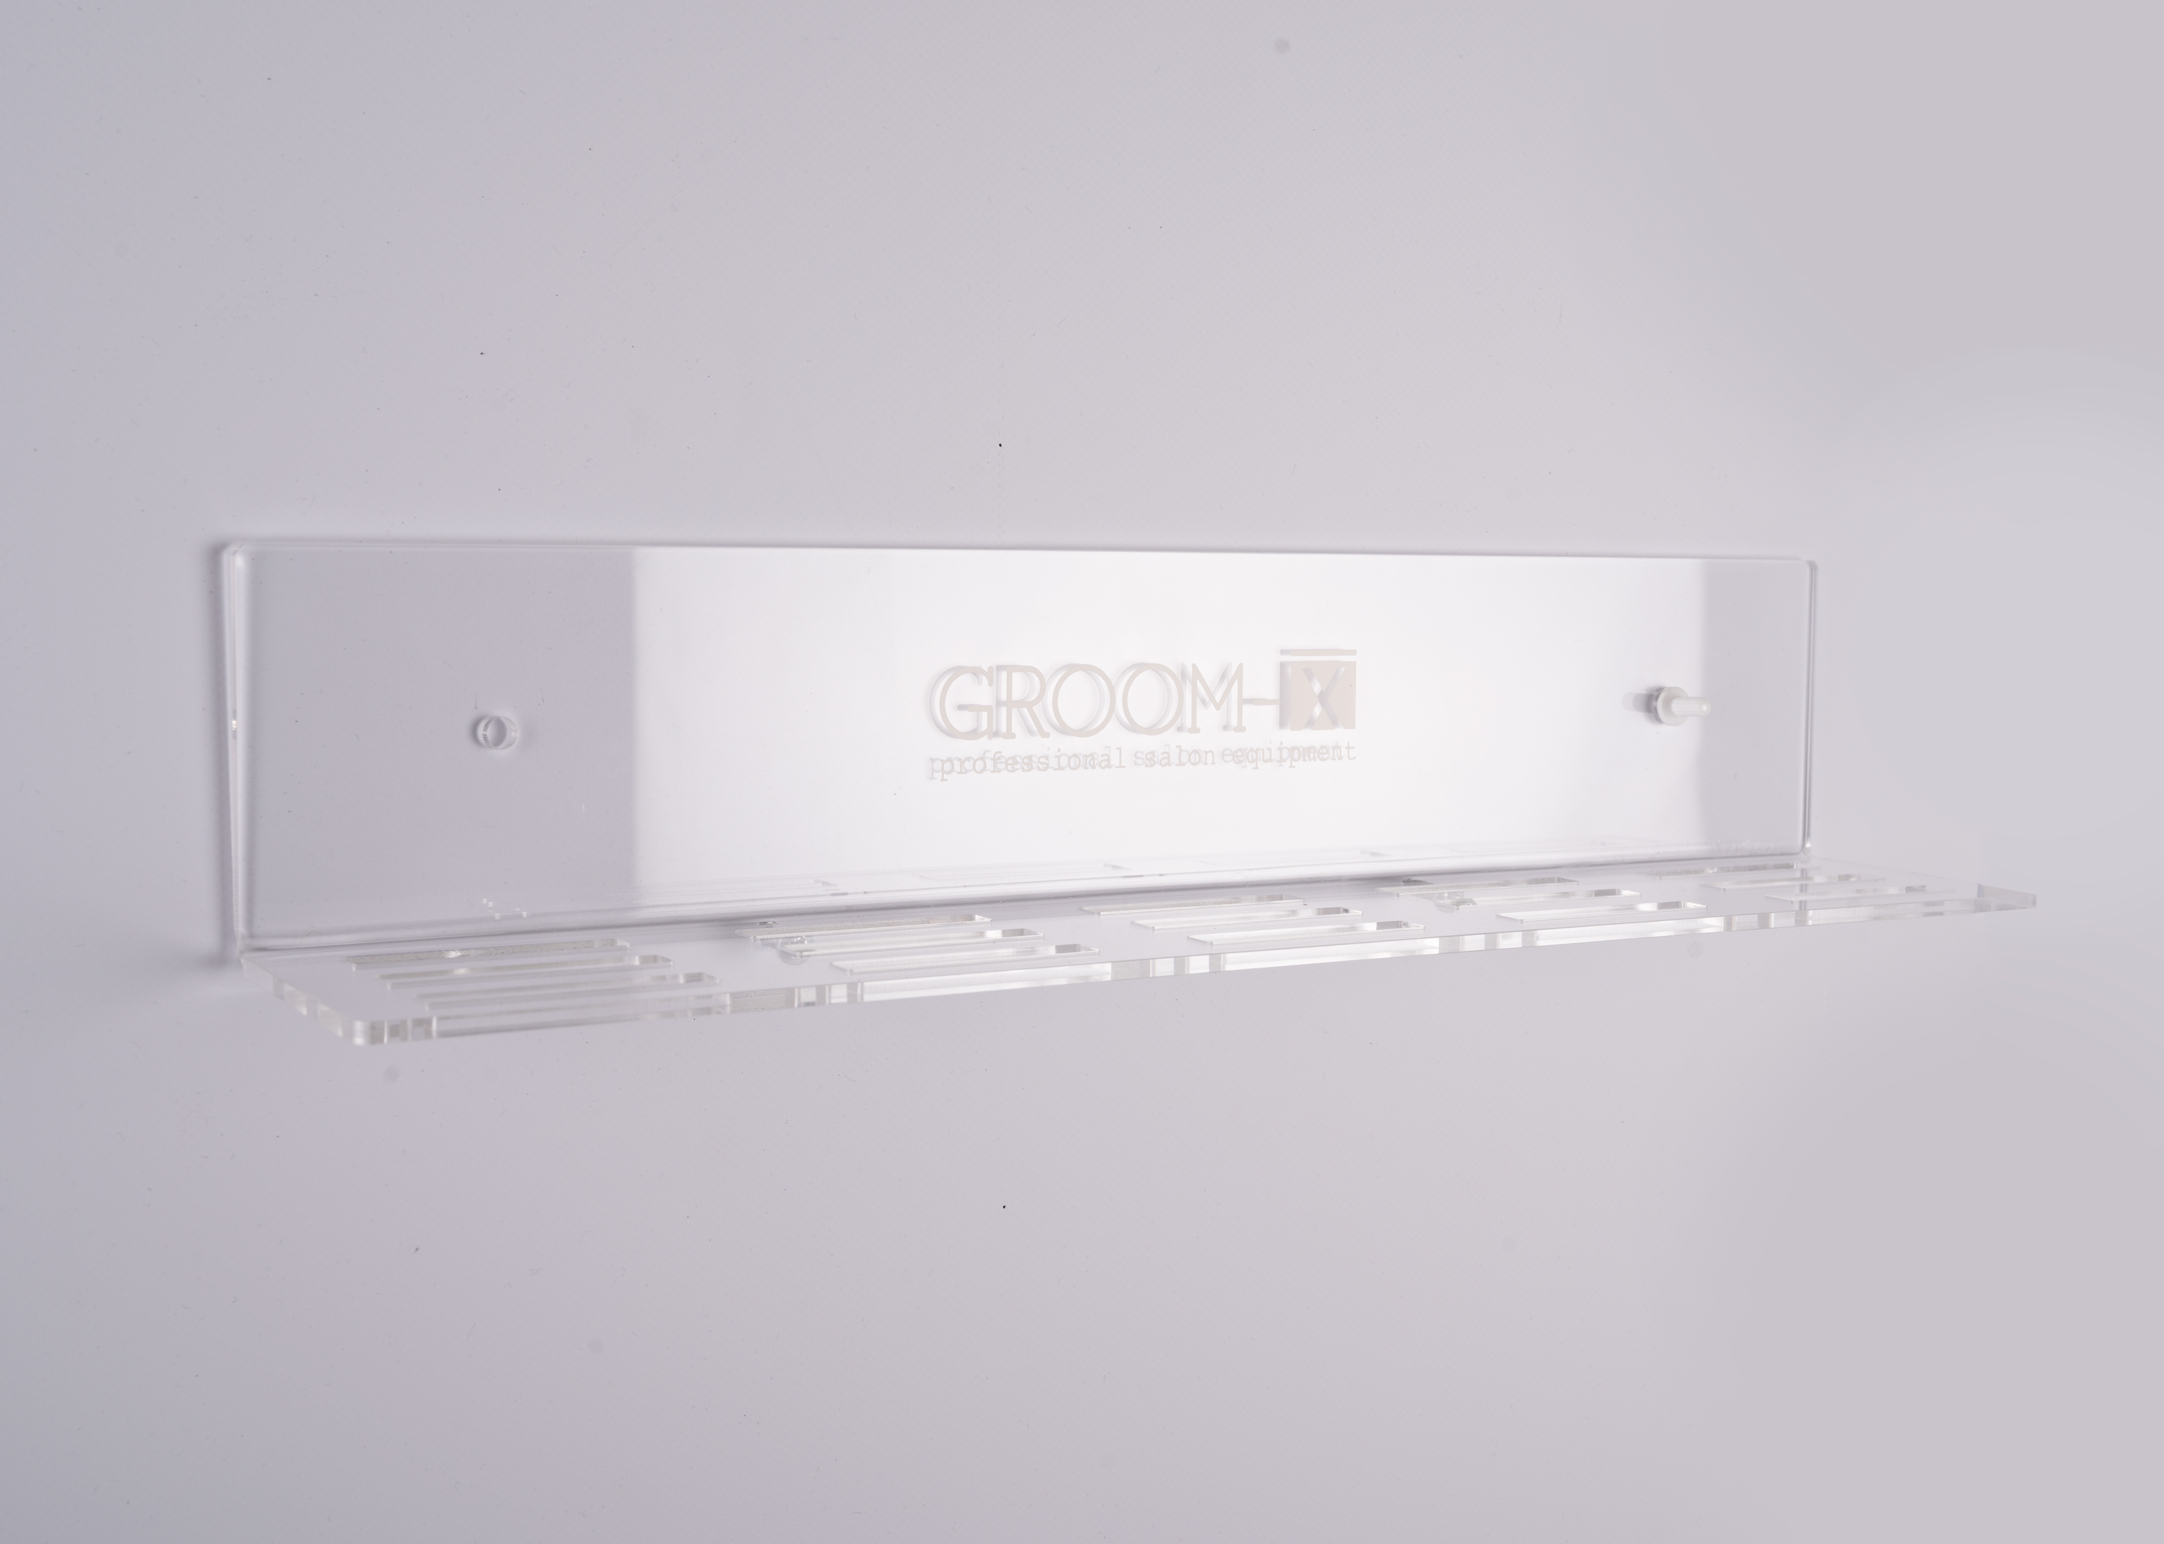 Groom-X Wall Mounted Plexi Blade Holder for 15 Blades